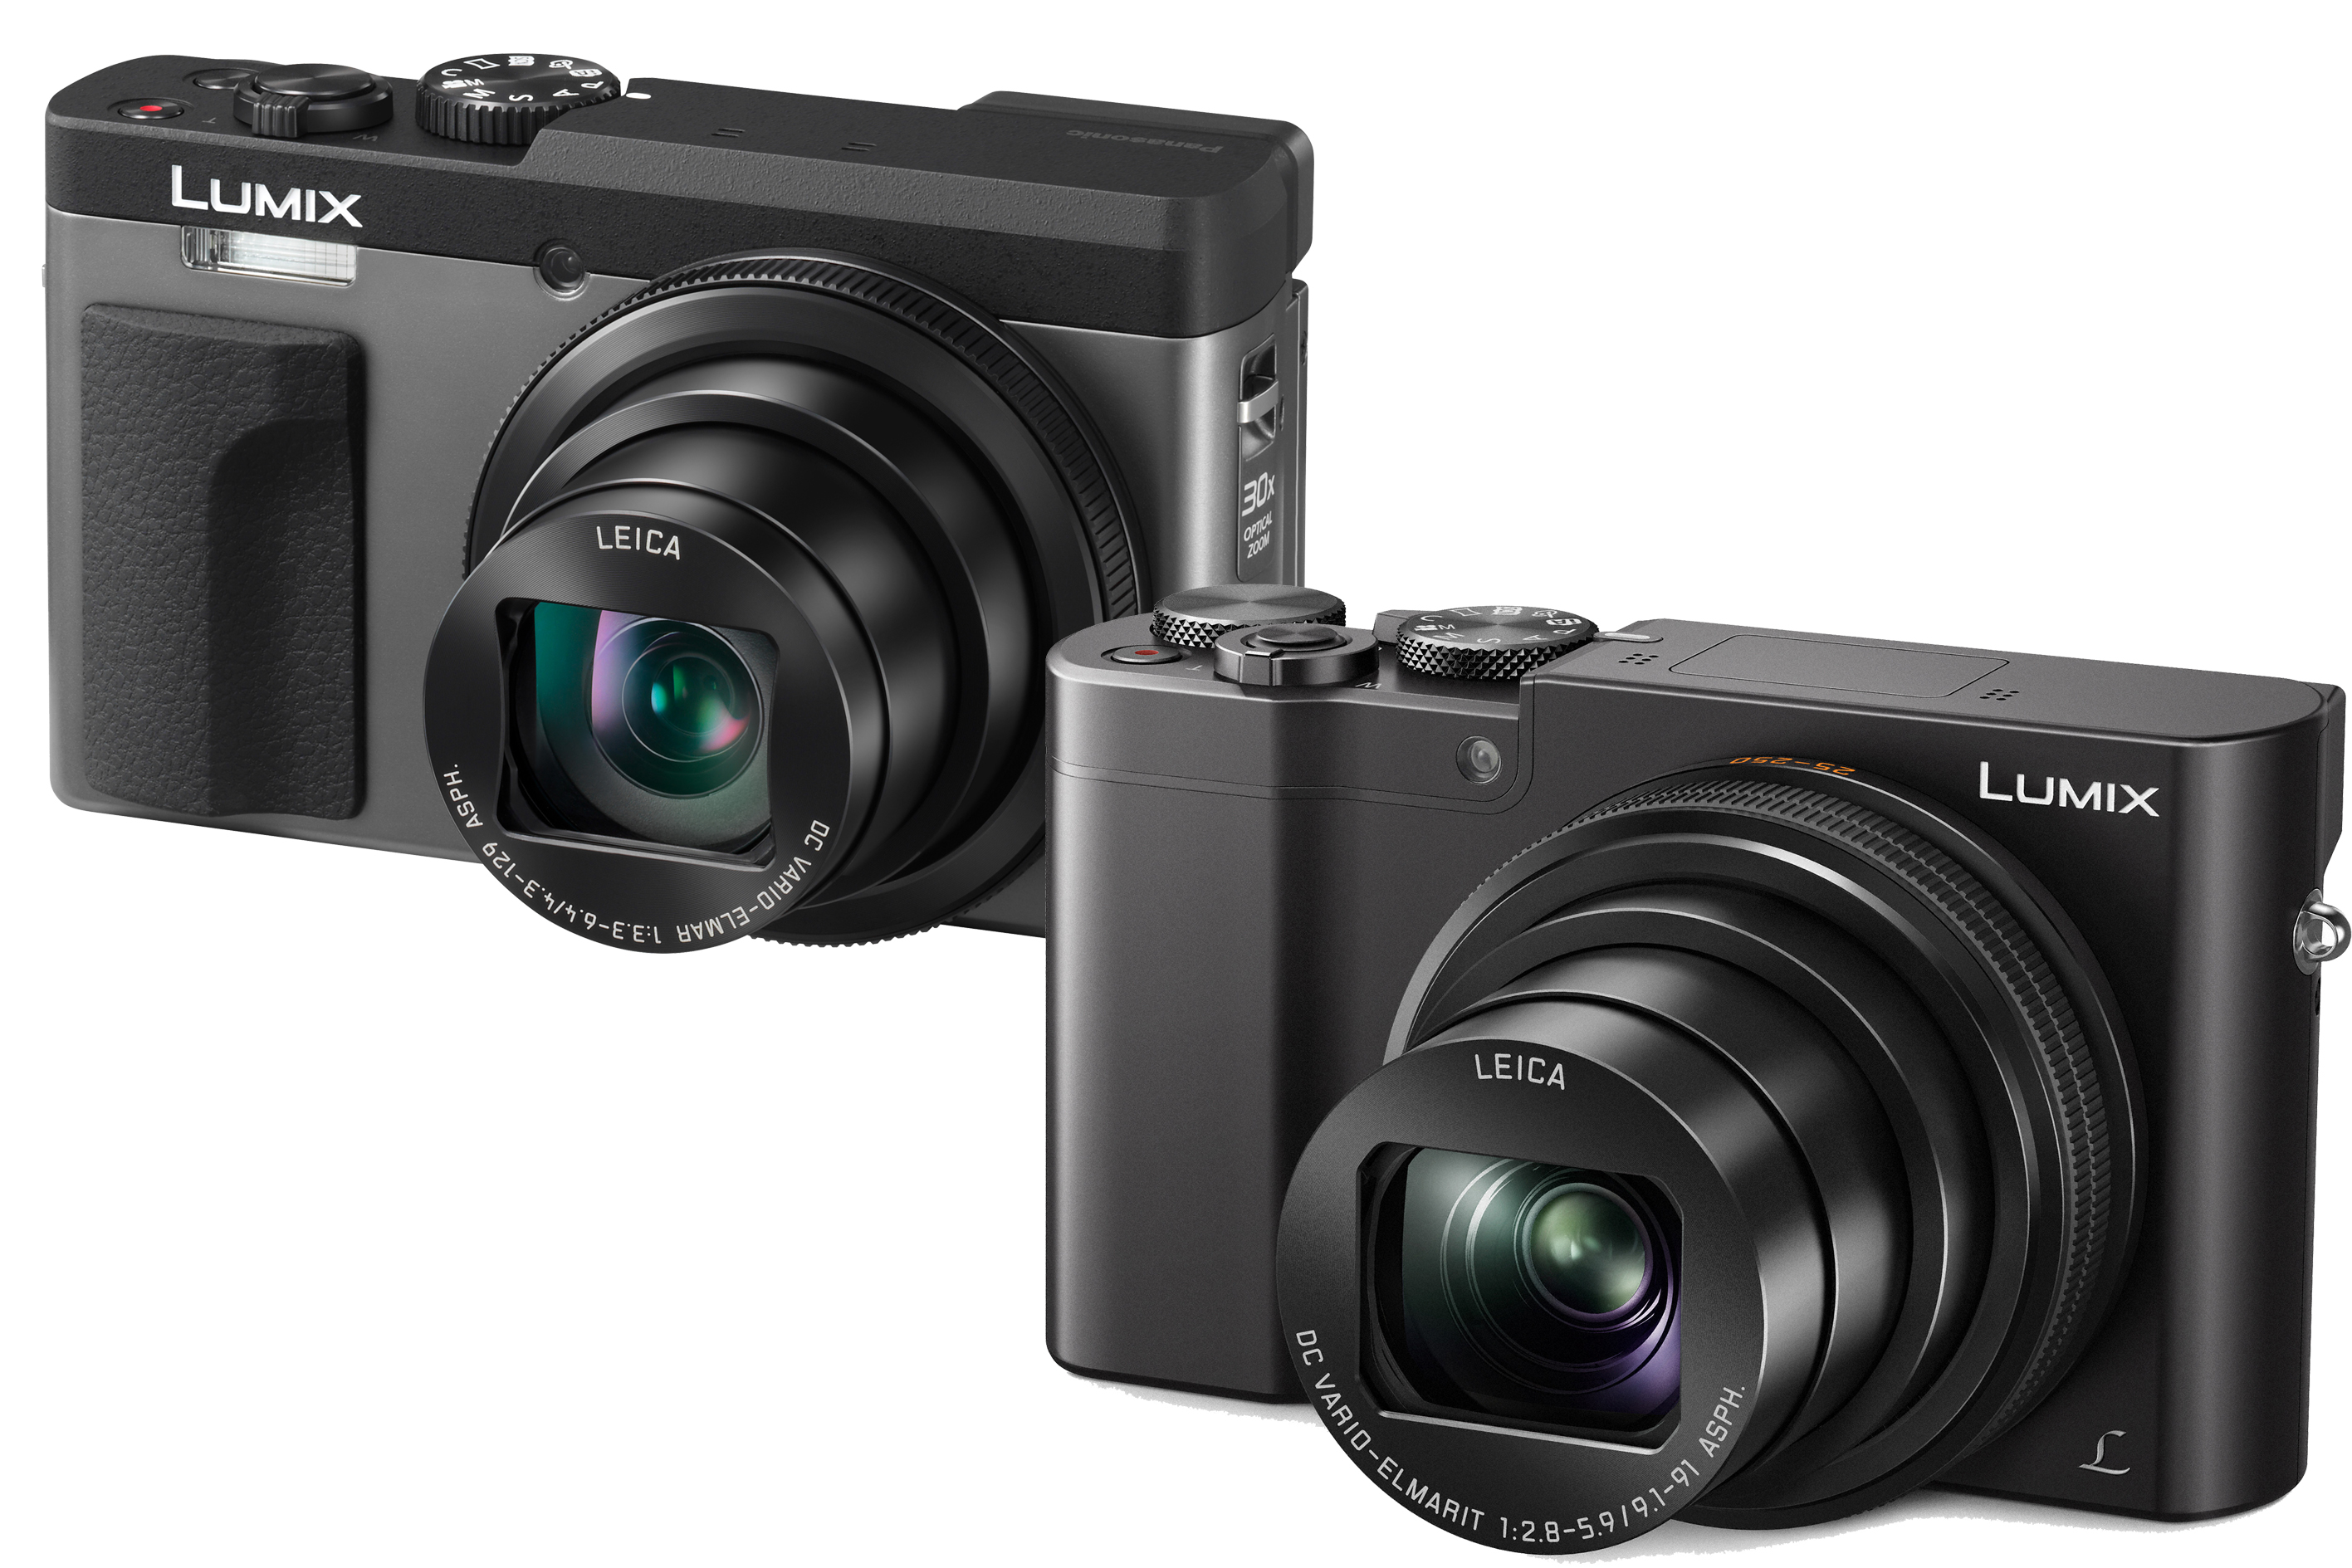 Panasonic TZ90 vs Panasonic TZ100